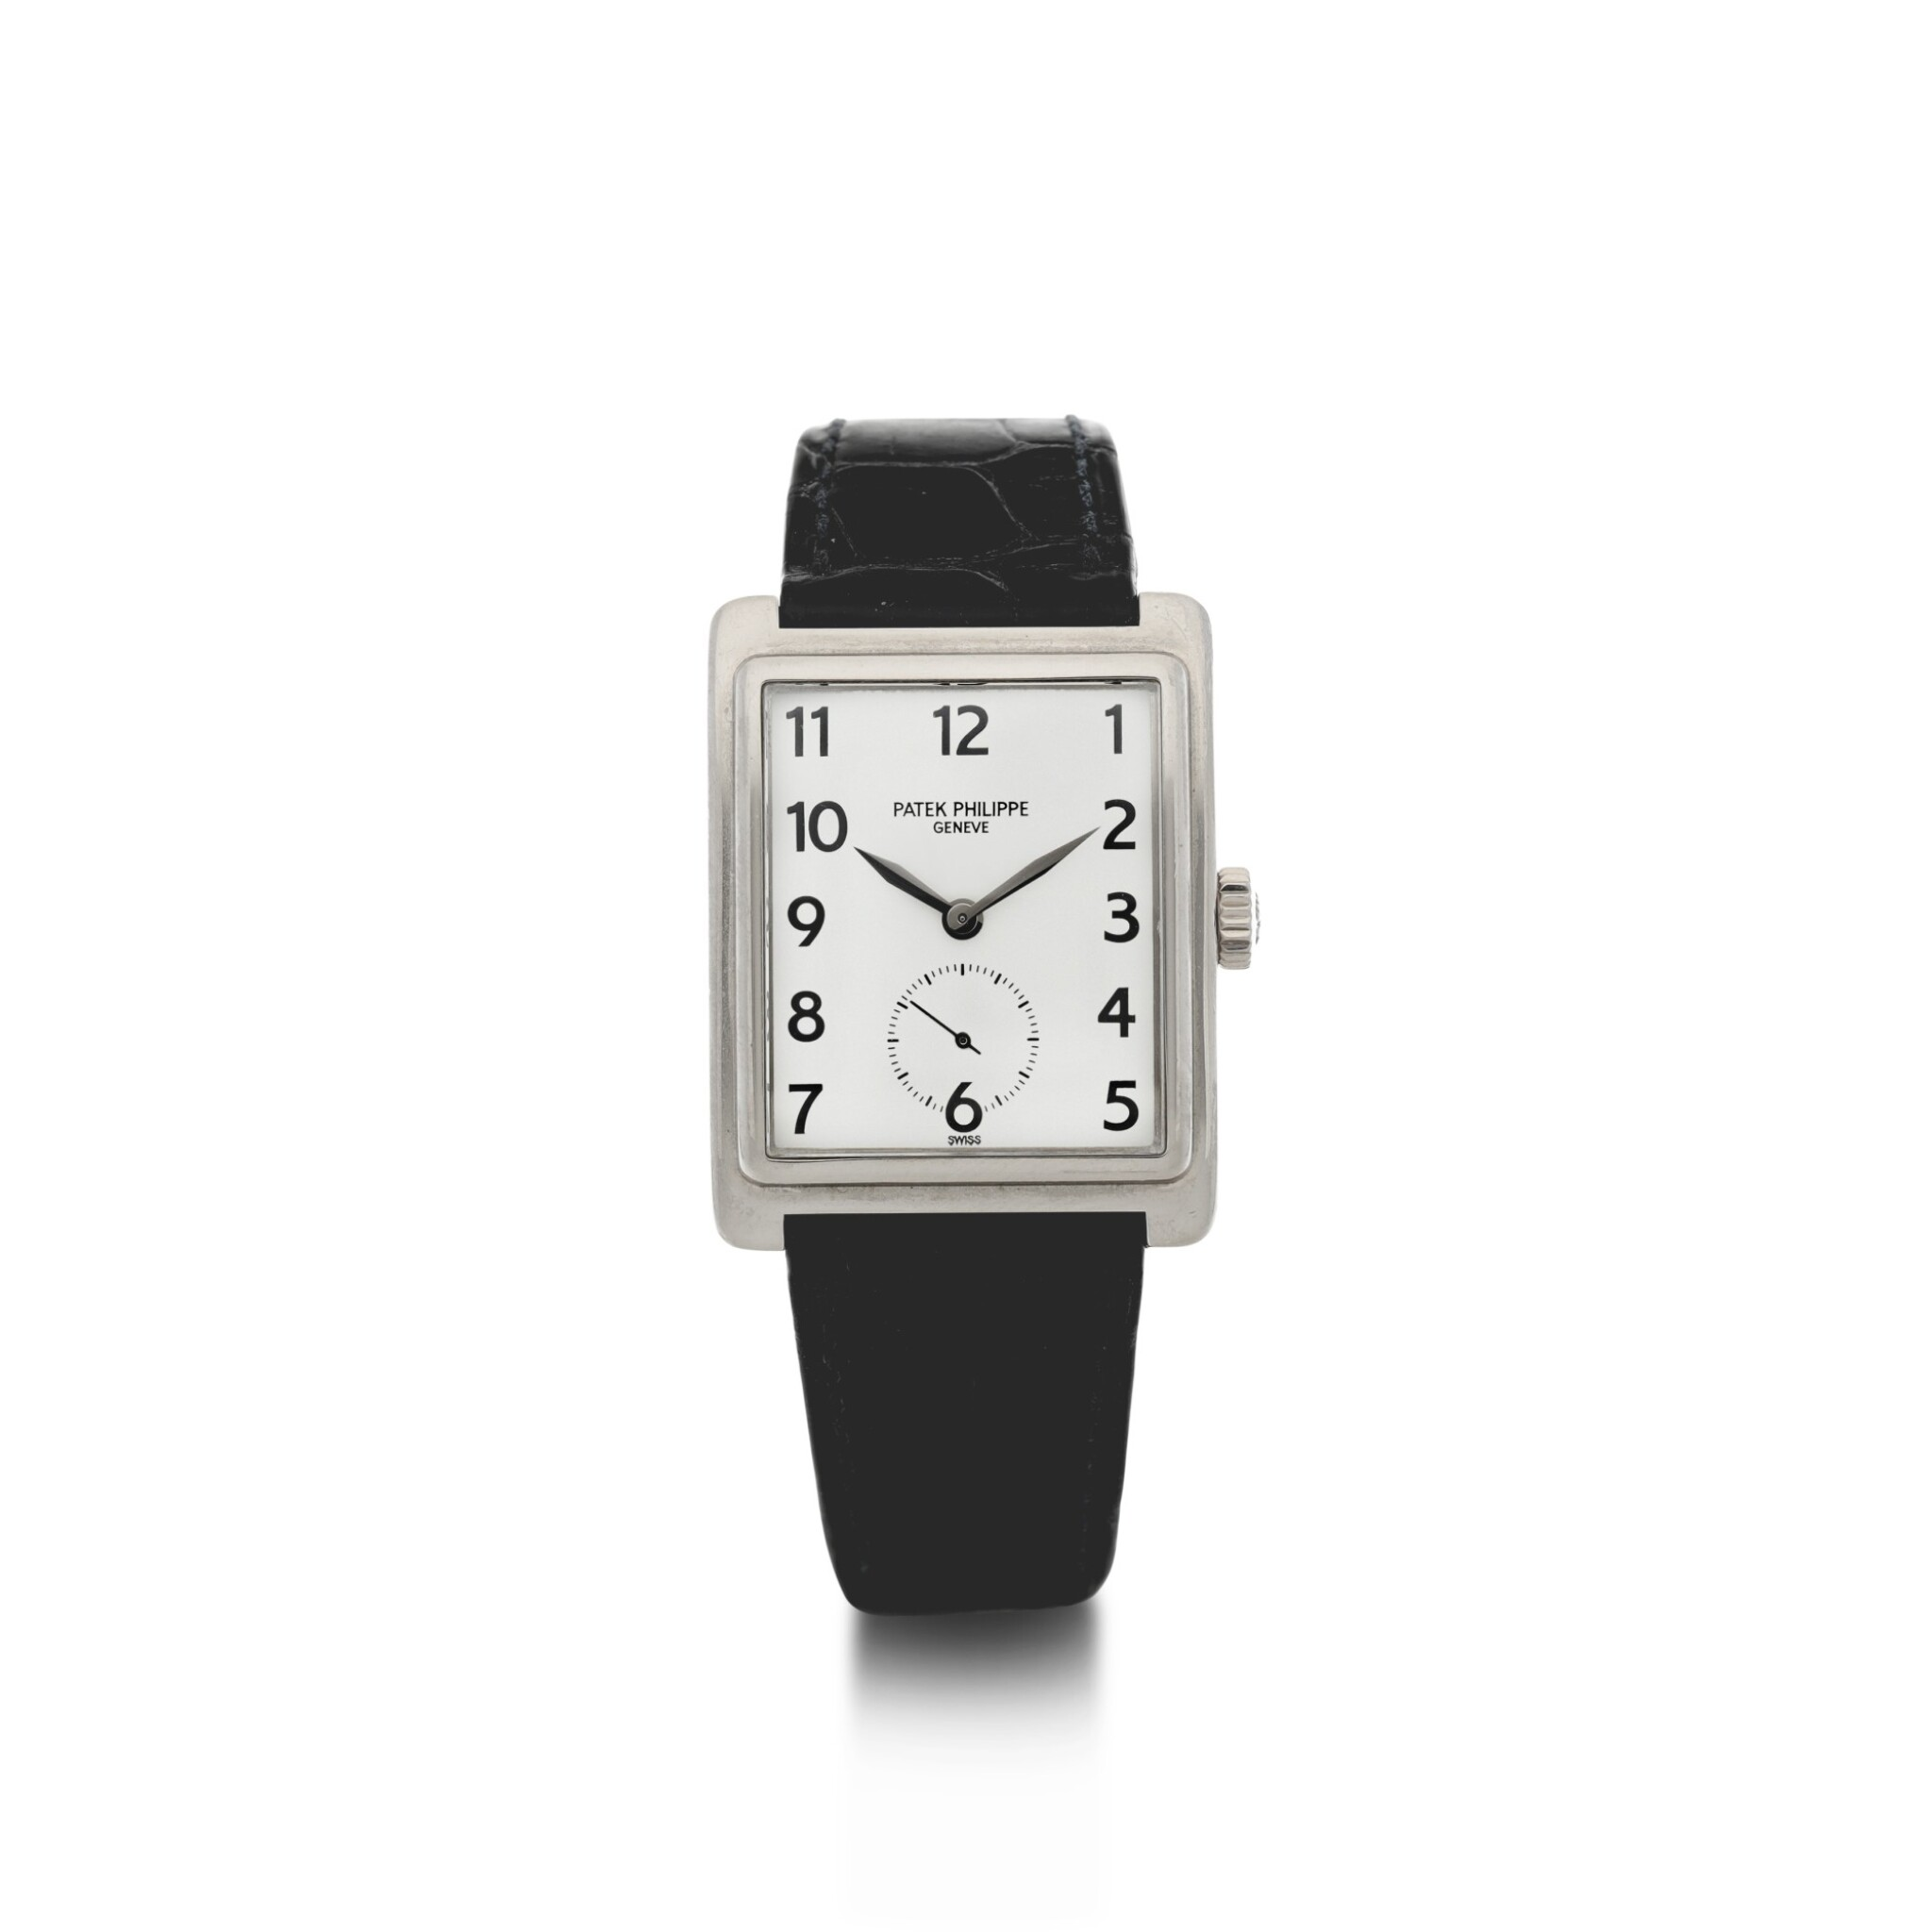 View full screen - View 1 of Lot 160. PATEK PHILIPPE | REFERENCE 5010-012  A WHITE GOLD RECTANGULAR WRISTWATCH, MADE IN 2001.